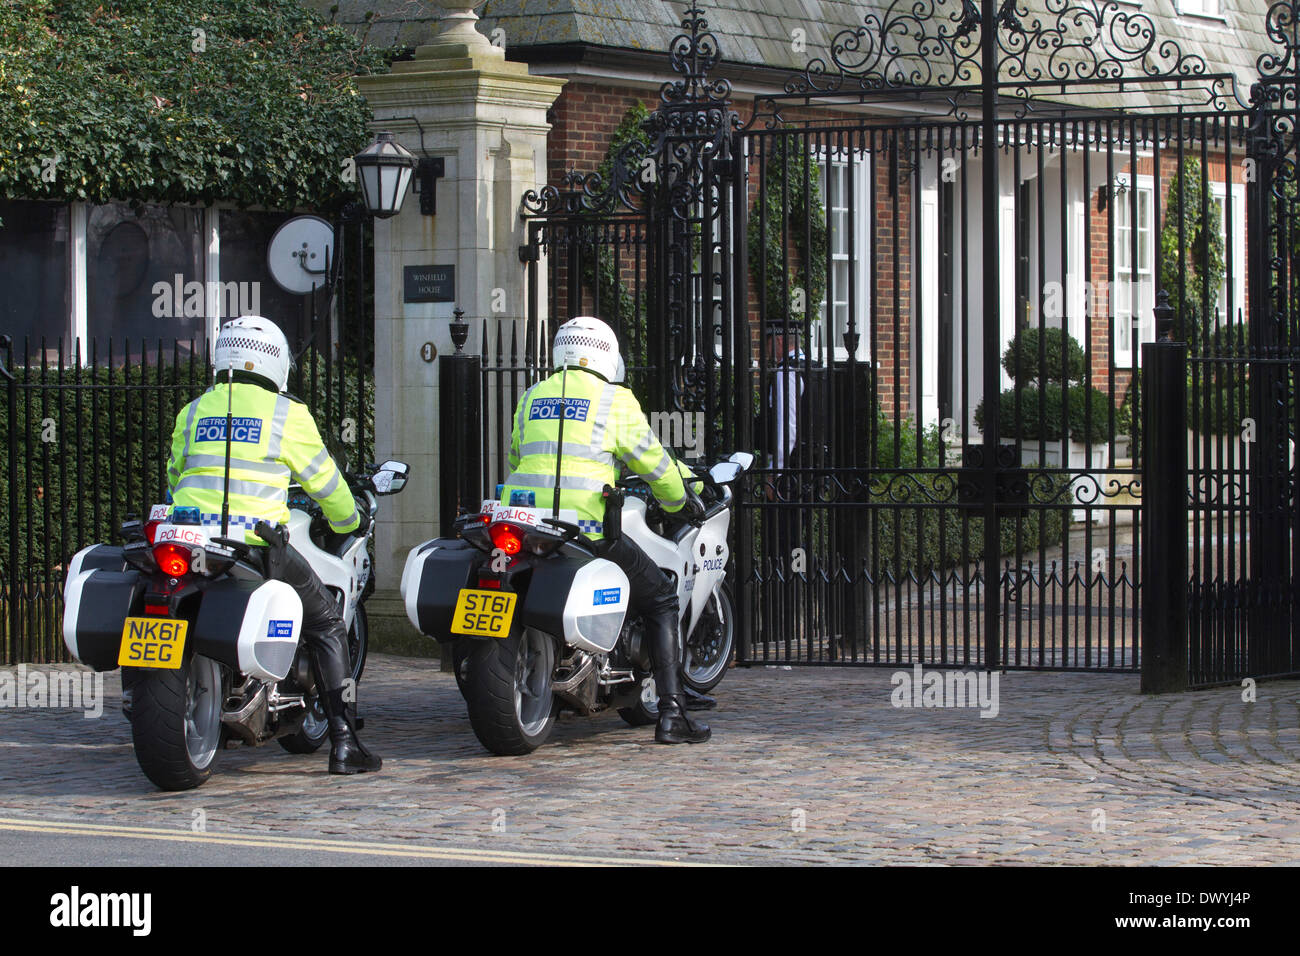 London UK. 14th March 2014. Police provide security outside the  American Ambassador residence in London as  US Secretary of State John Kerry was meeting his Russian counterpart foreign minister Sergei Lavrov in London to discuss the Ukranian crisis and the referendum in Crimea - Stock Image